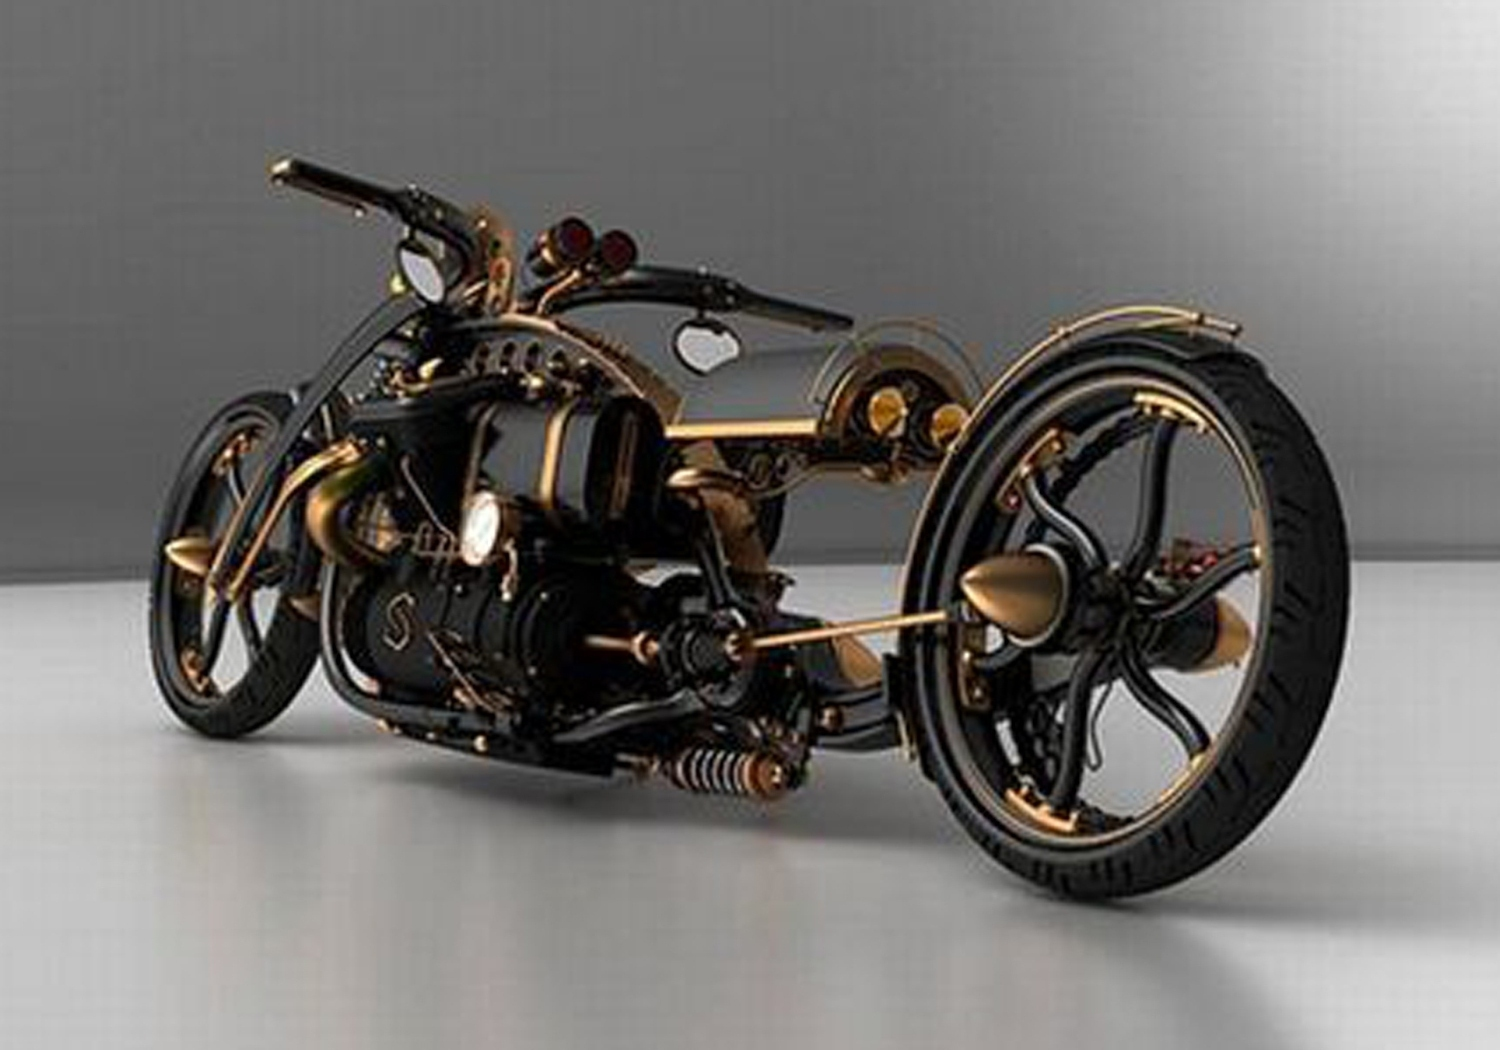 Amazing Cars And Bikes Bikes Of The Future